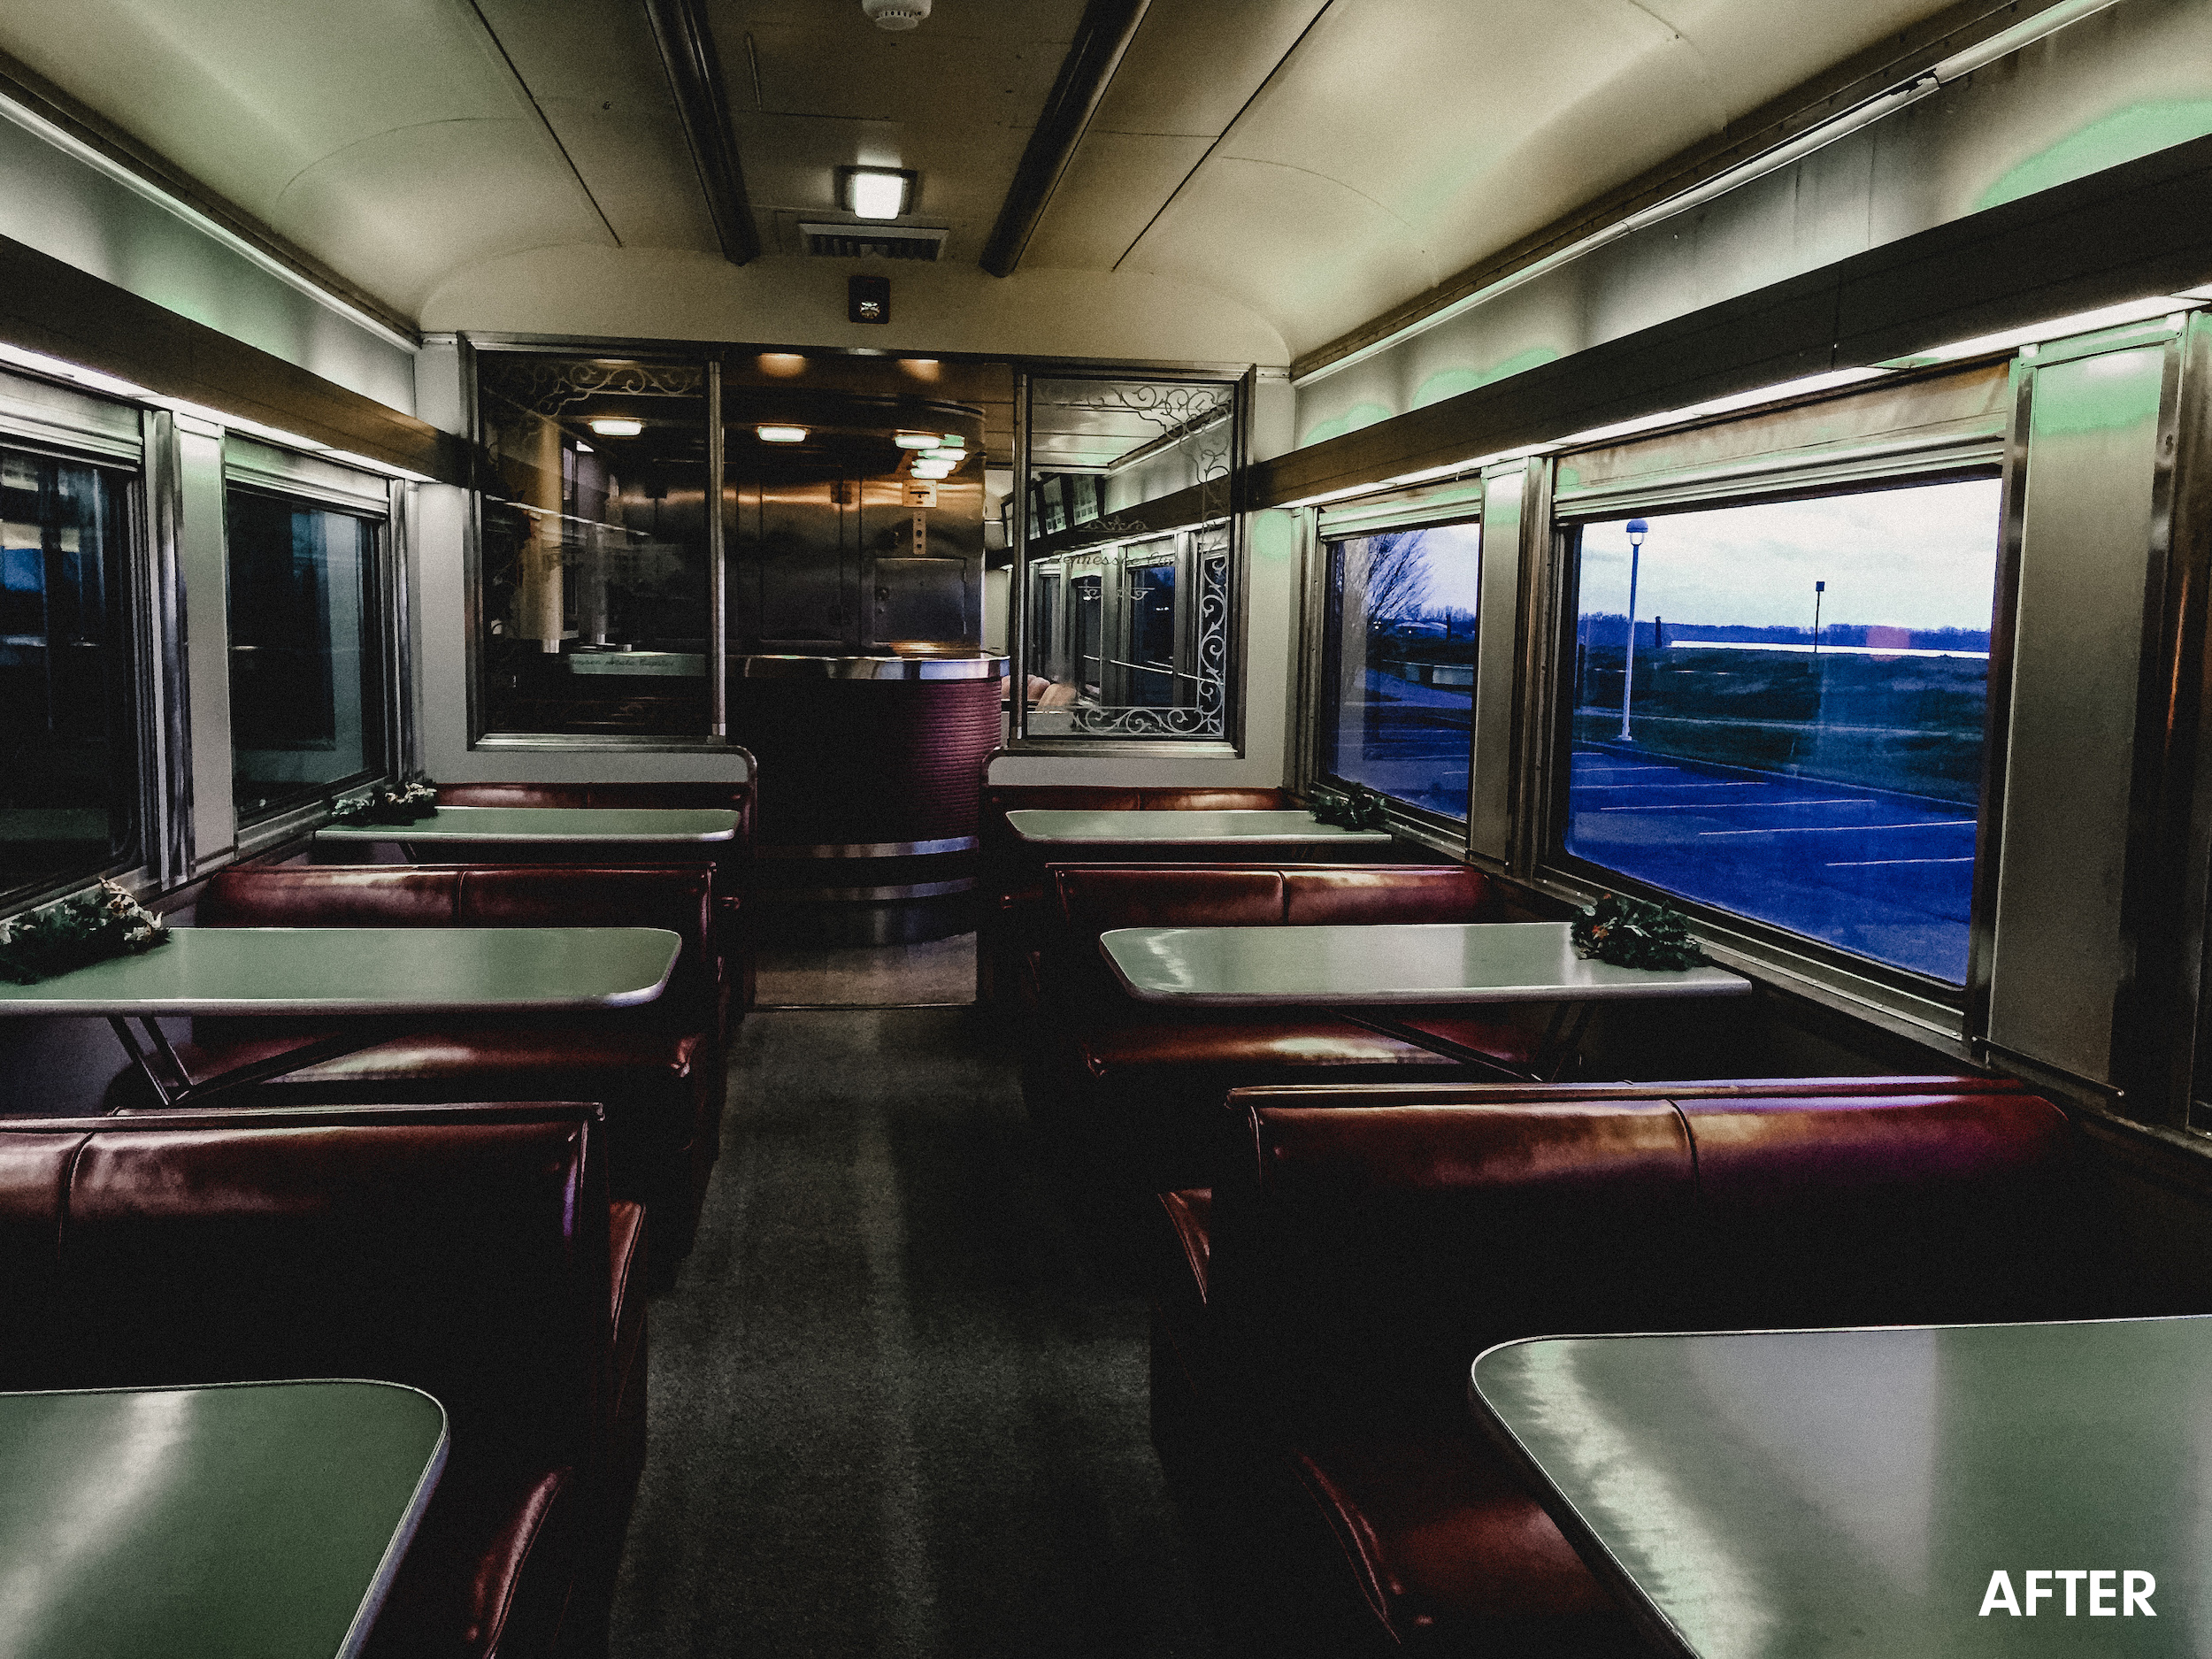 moody-train-dinerchickpeach-lightroom-presets7.jpg